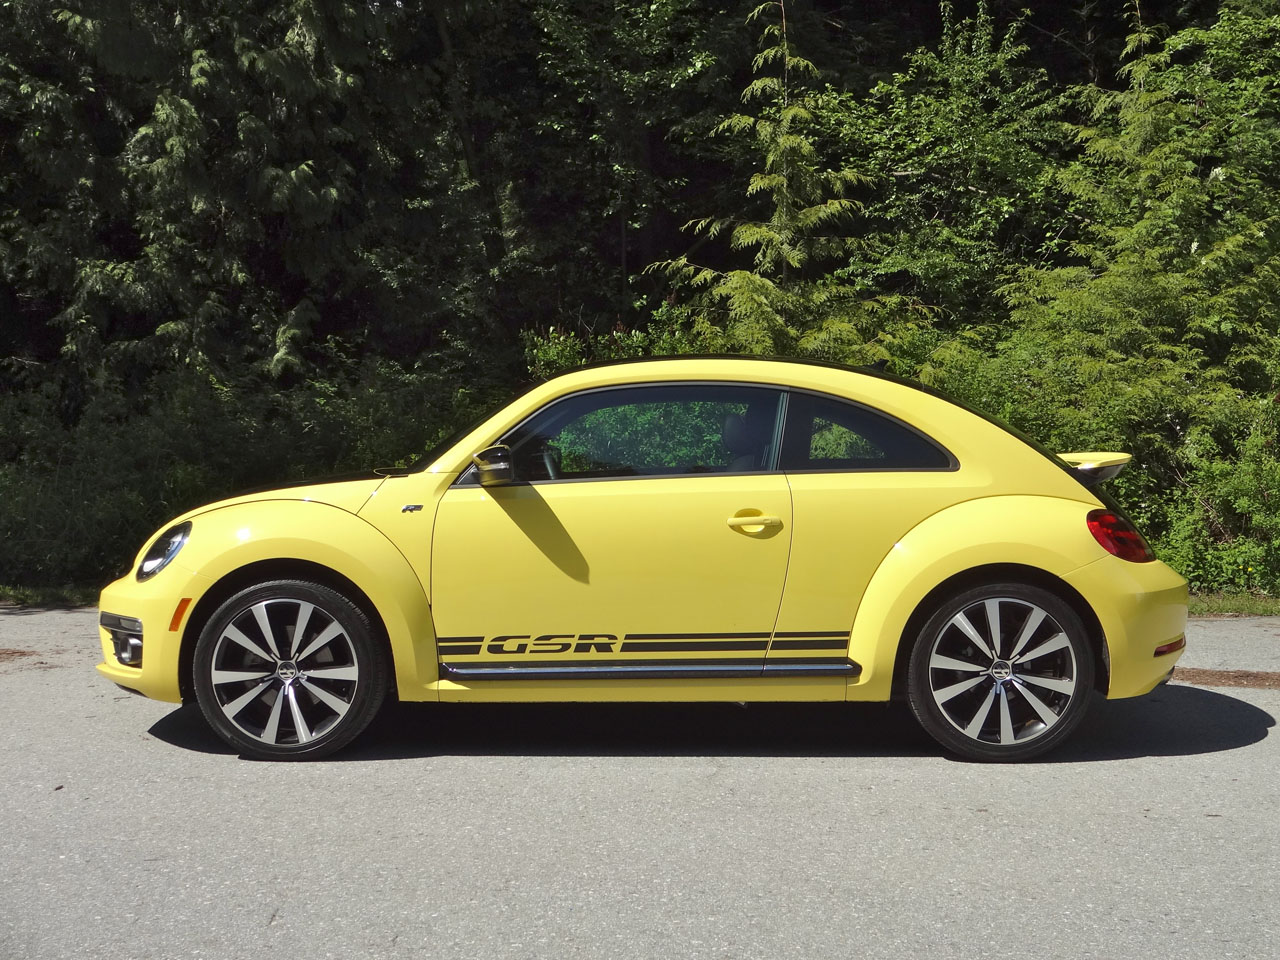 2014 volkswagen beetle gsr road test review carcostcanada